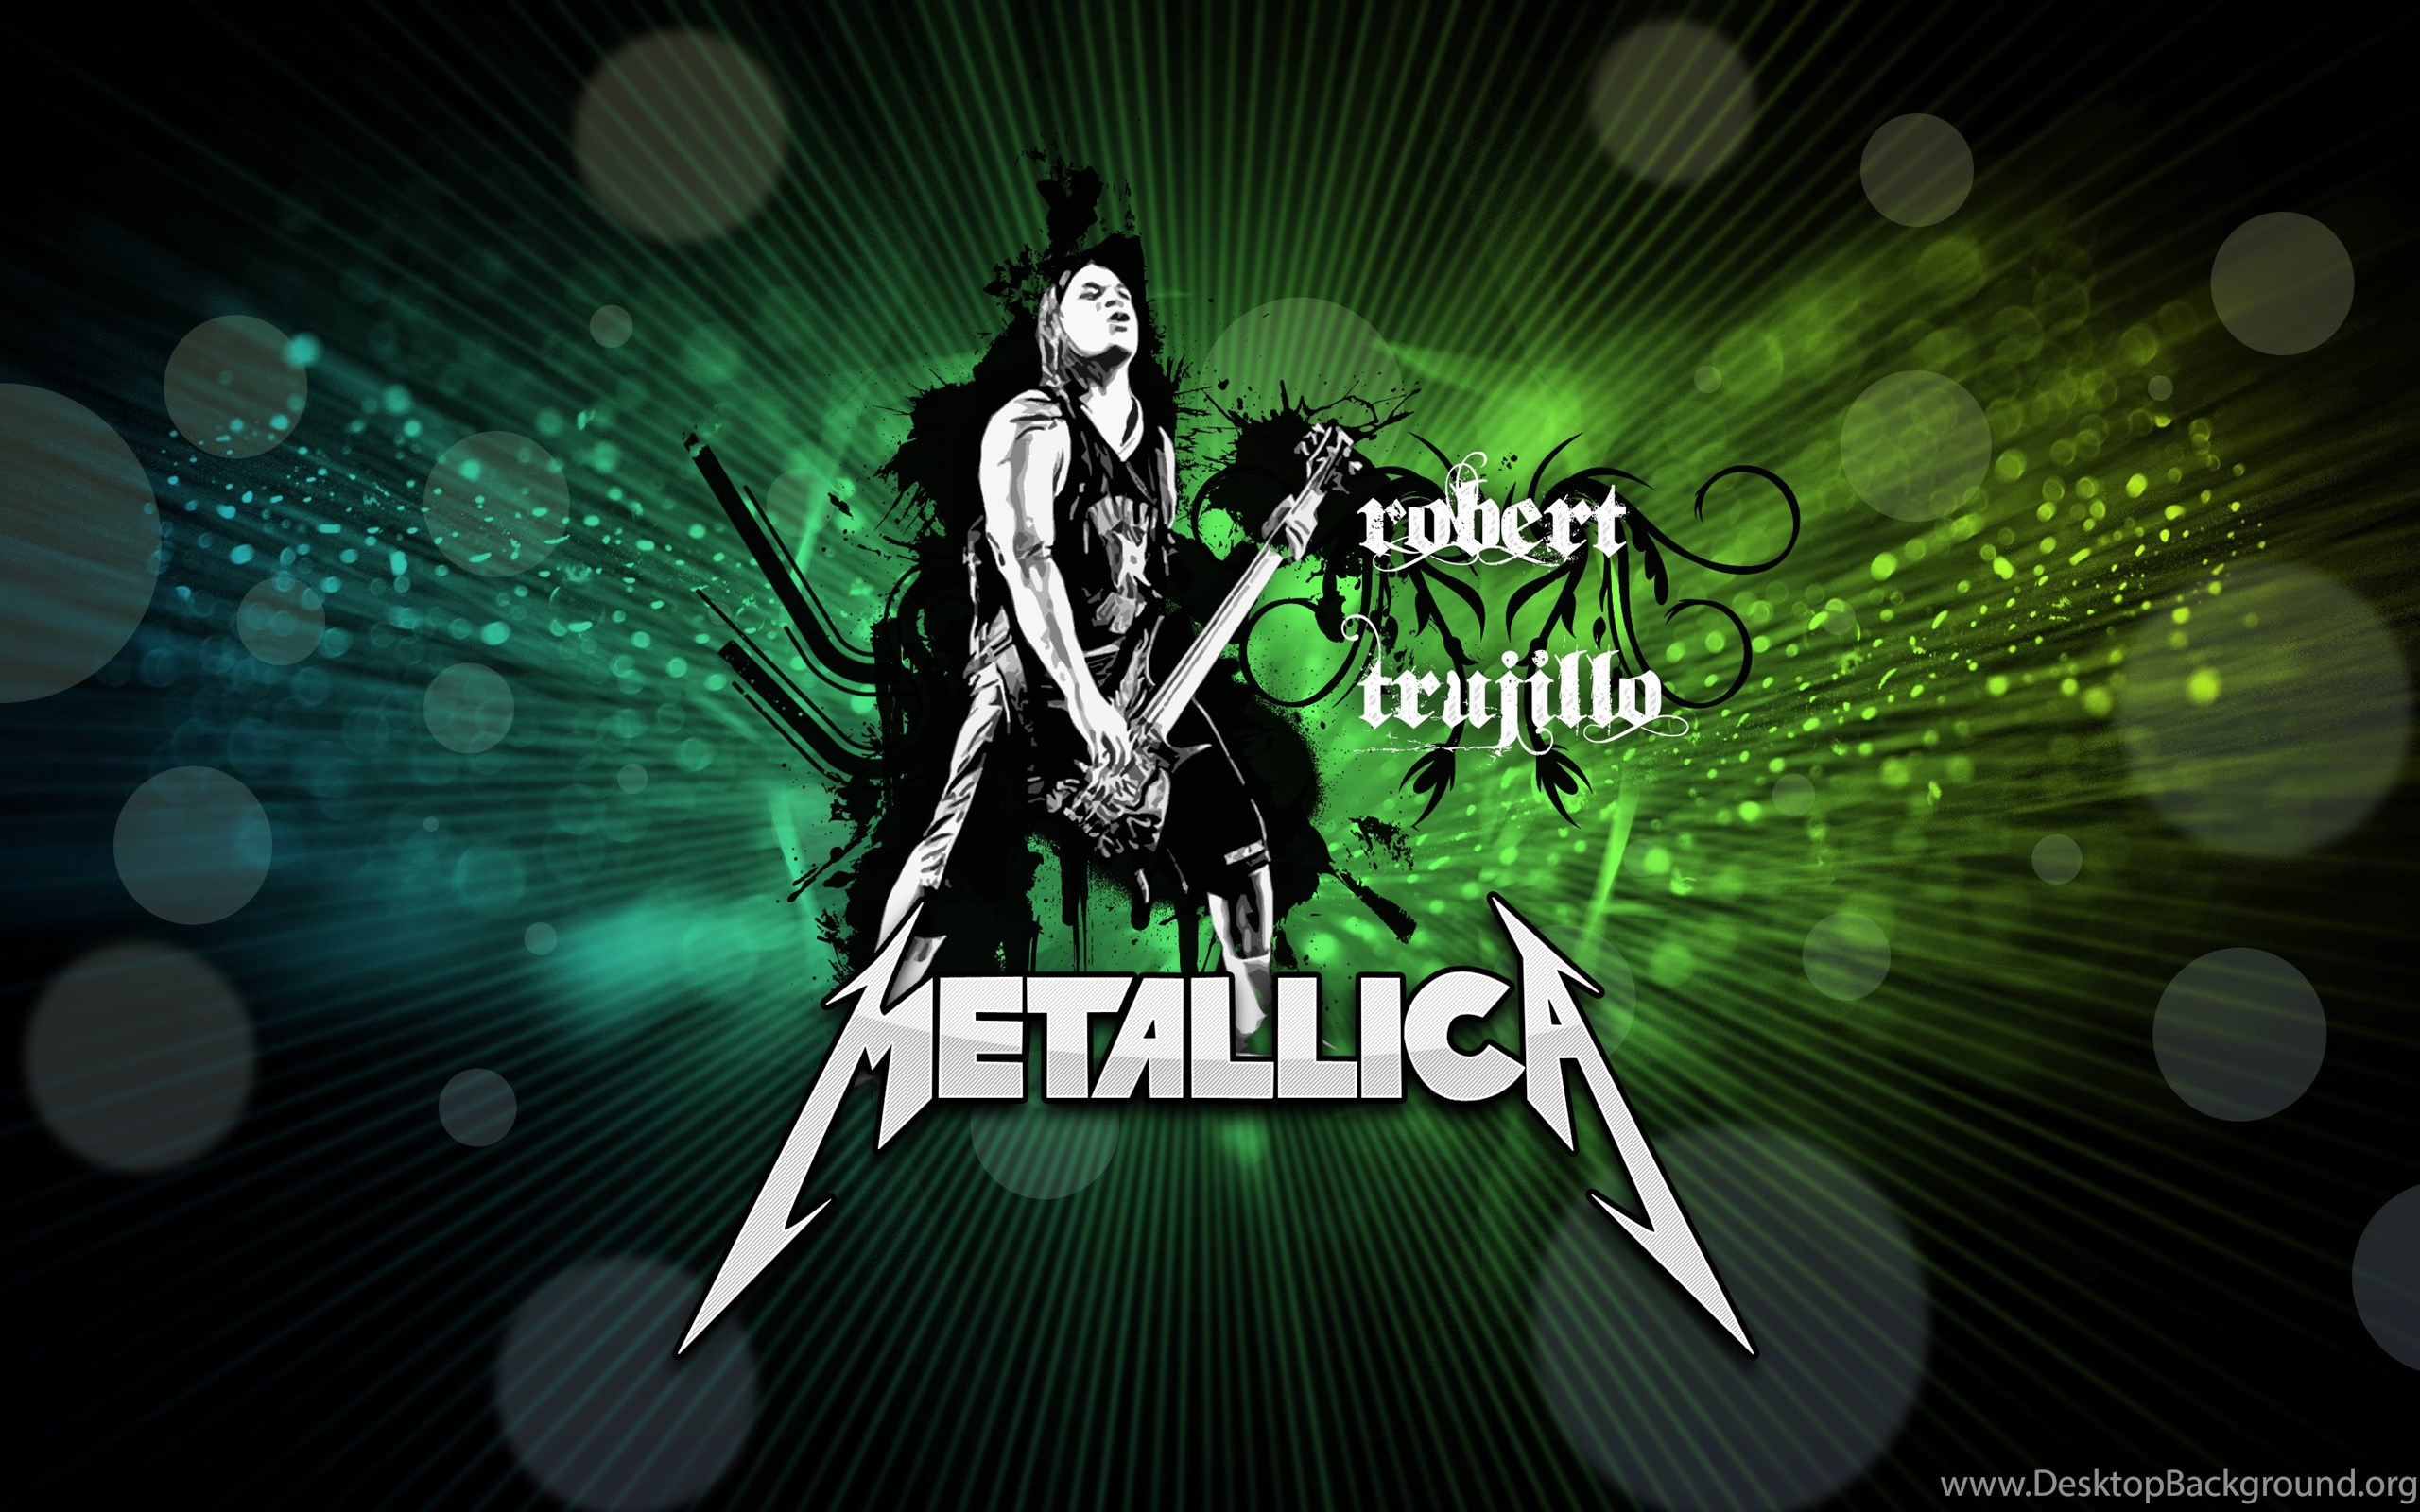 Music Wallpaper Rock N Roll Bands Hd Resolution Wallpapers For Hd